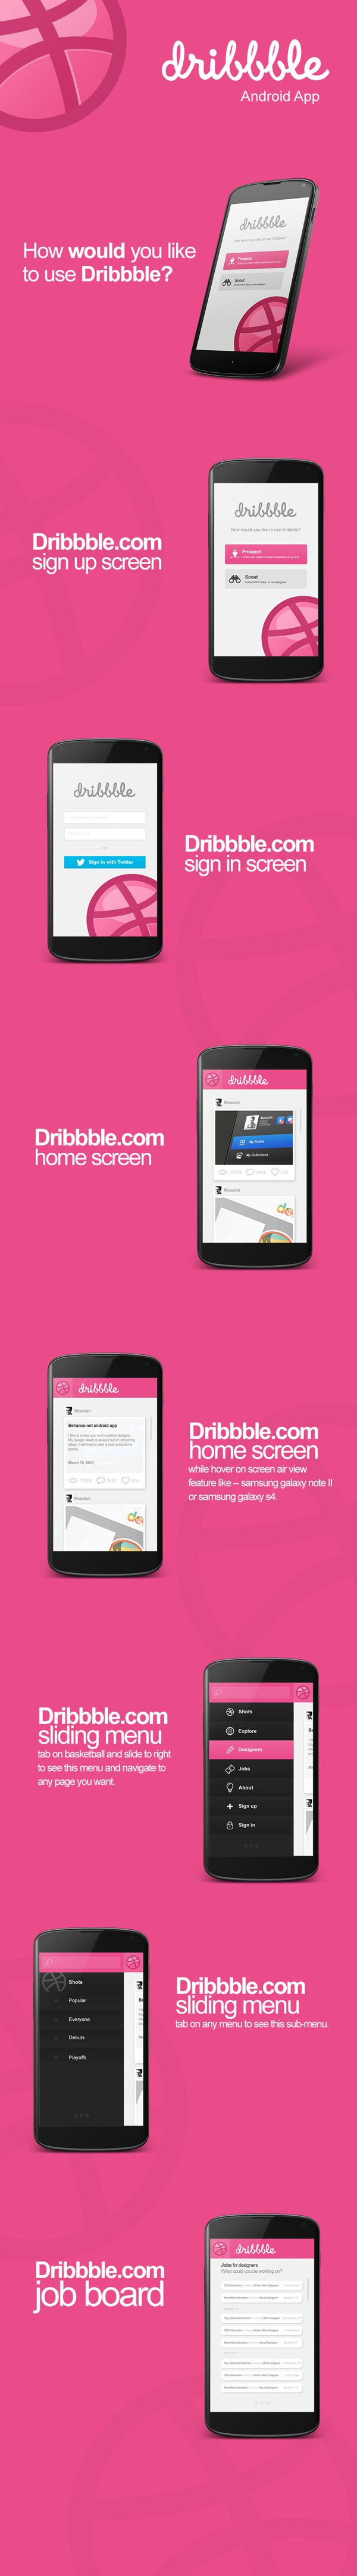 Dribbble.com Android app user interface design by Moe slah, via Behance